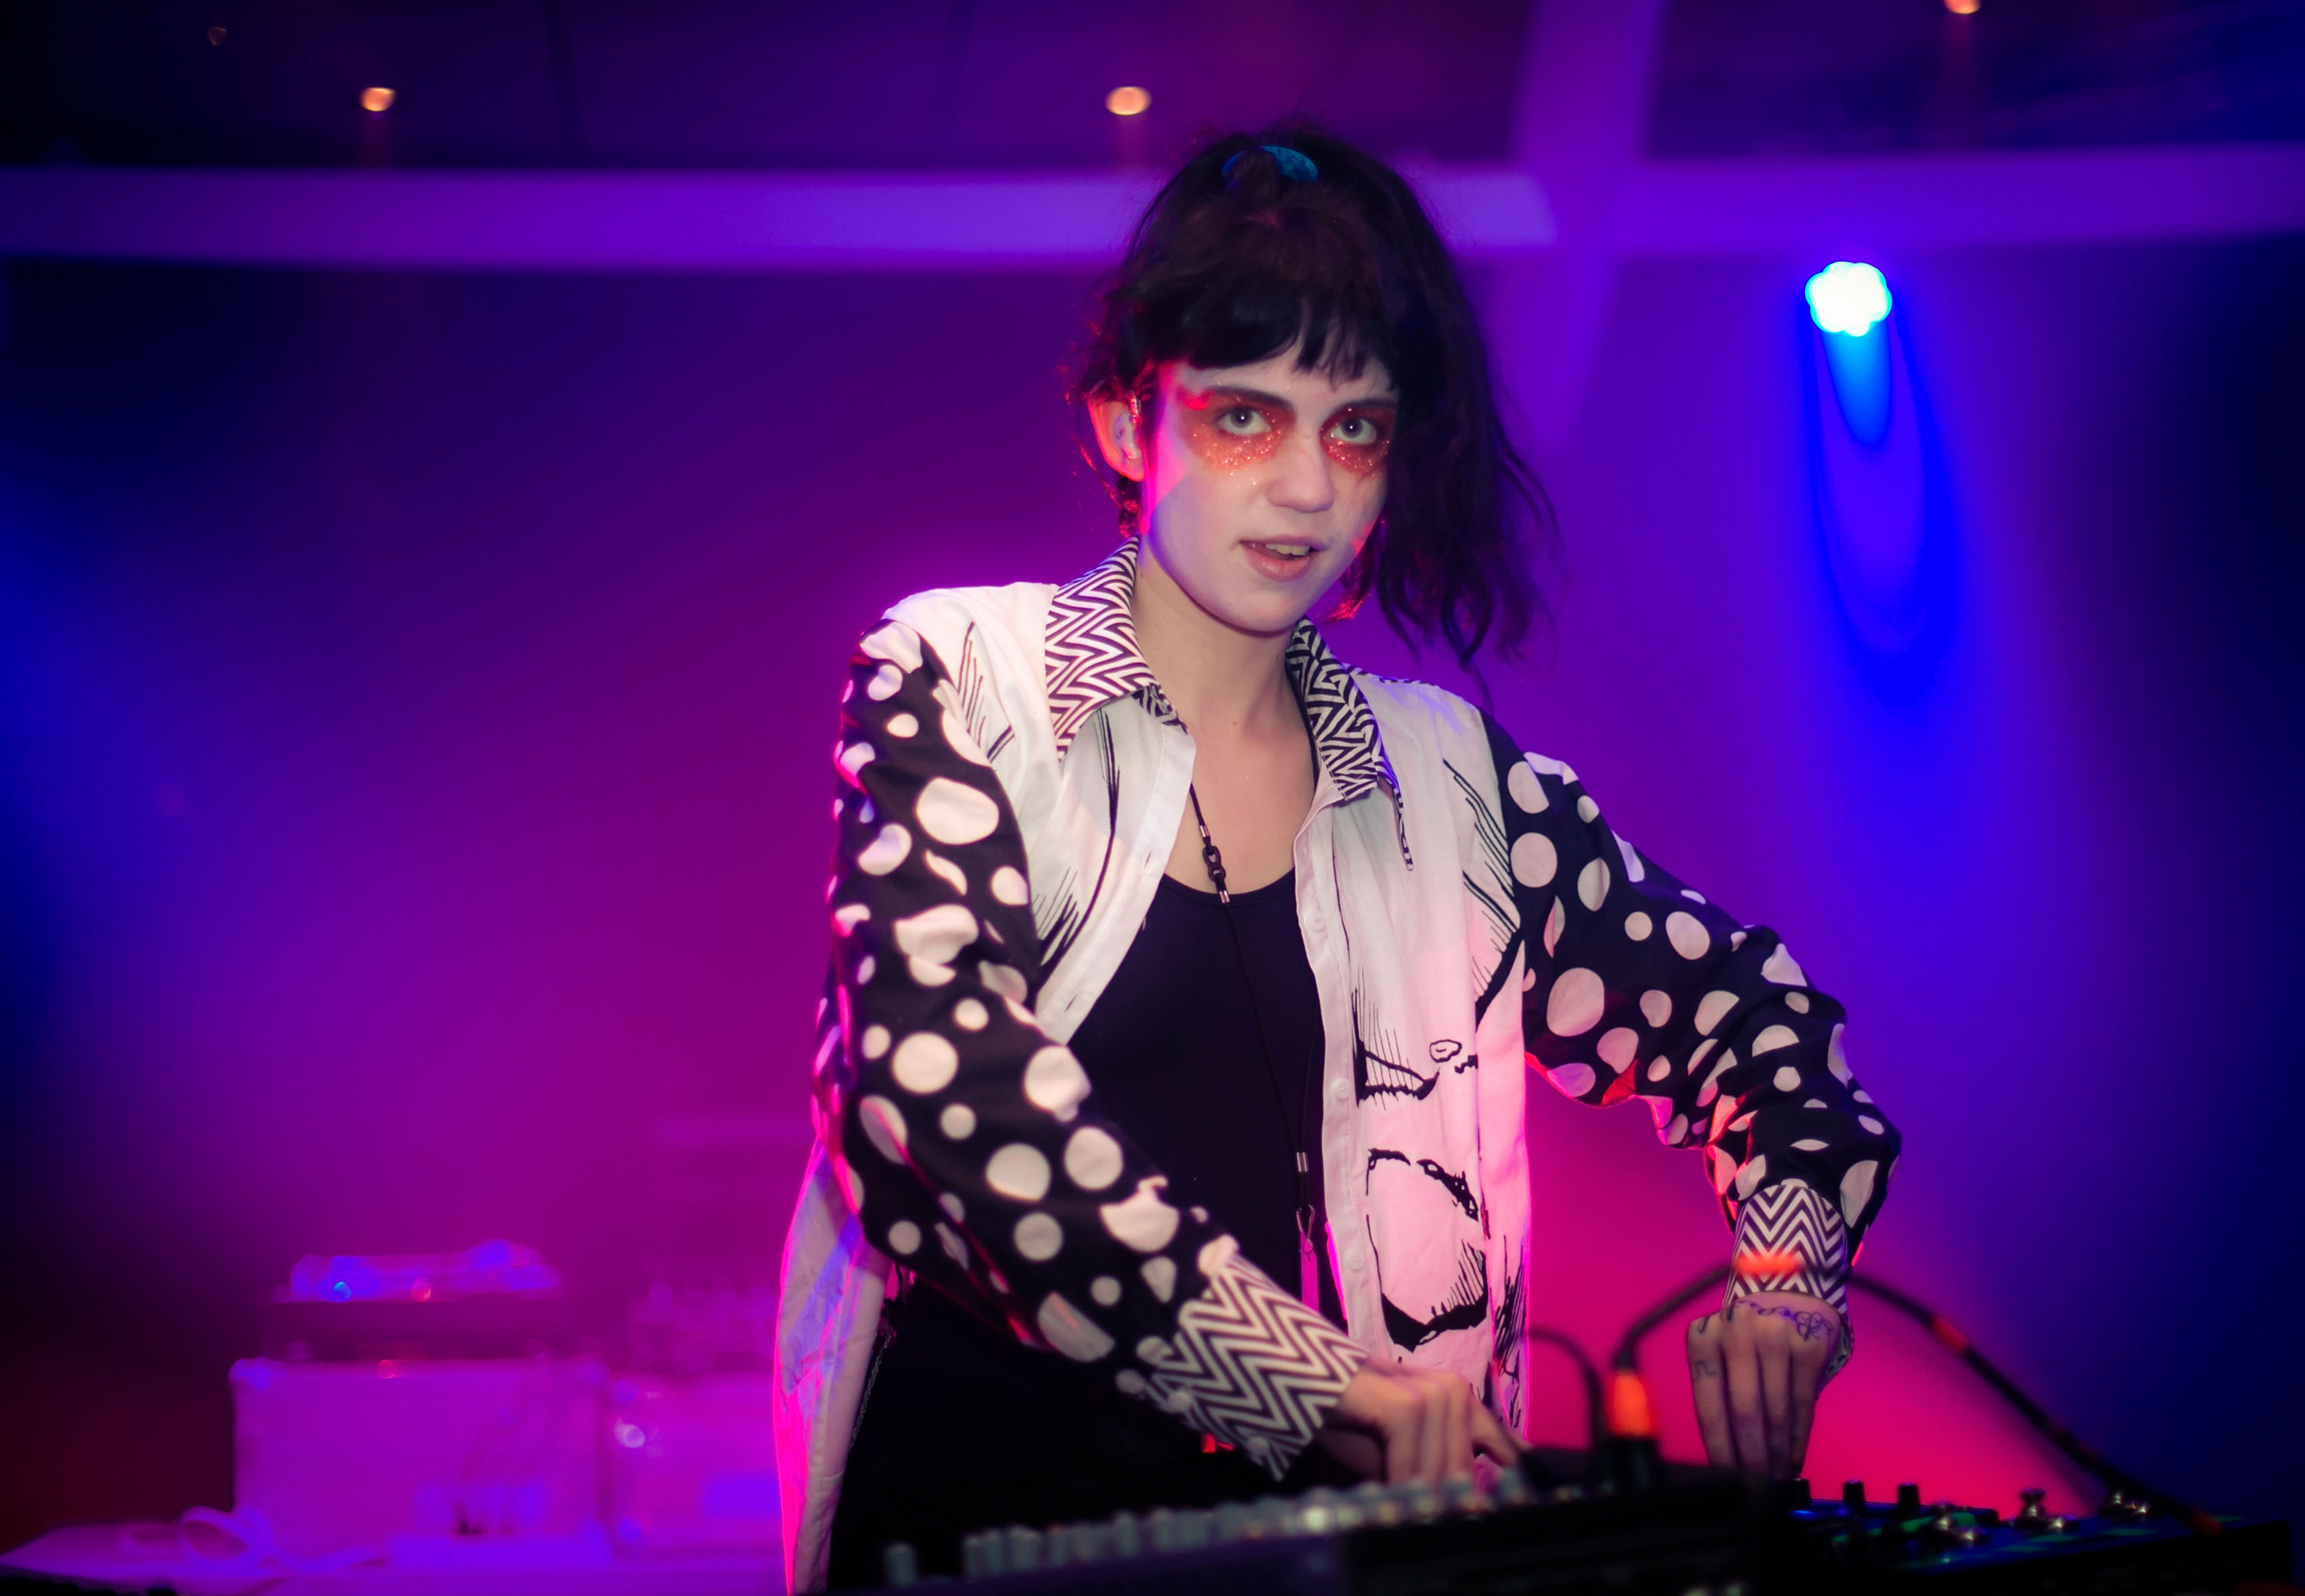 Grimes performs at S.S. Coachella  Music Festival At Sea  - Bahamas - Day 3 - December 18, 2012 in Nassau, Bahamas.